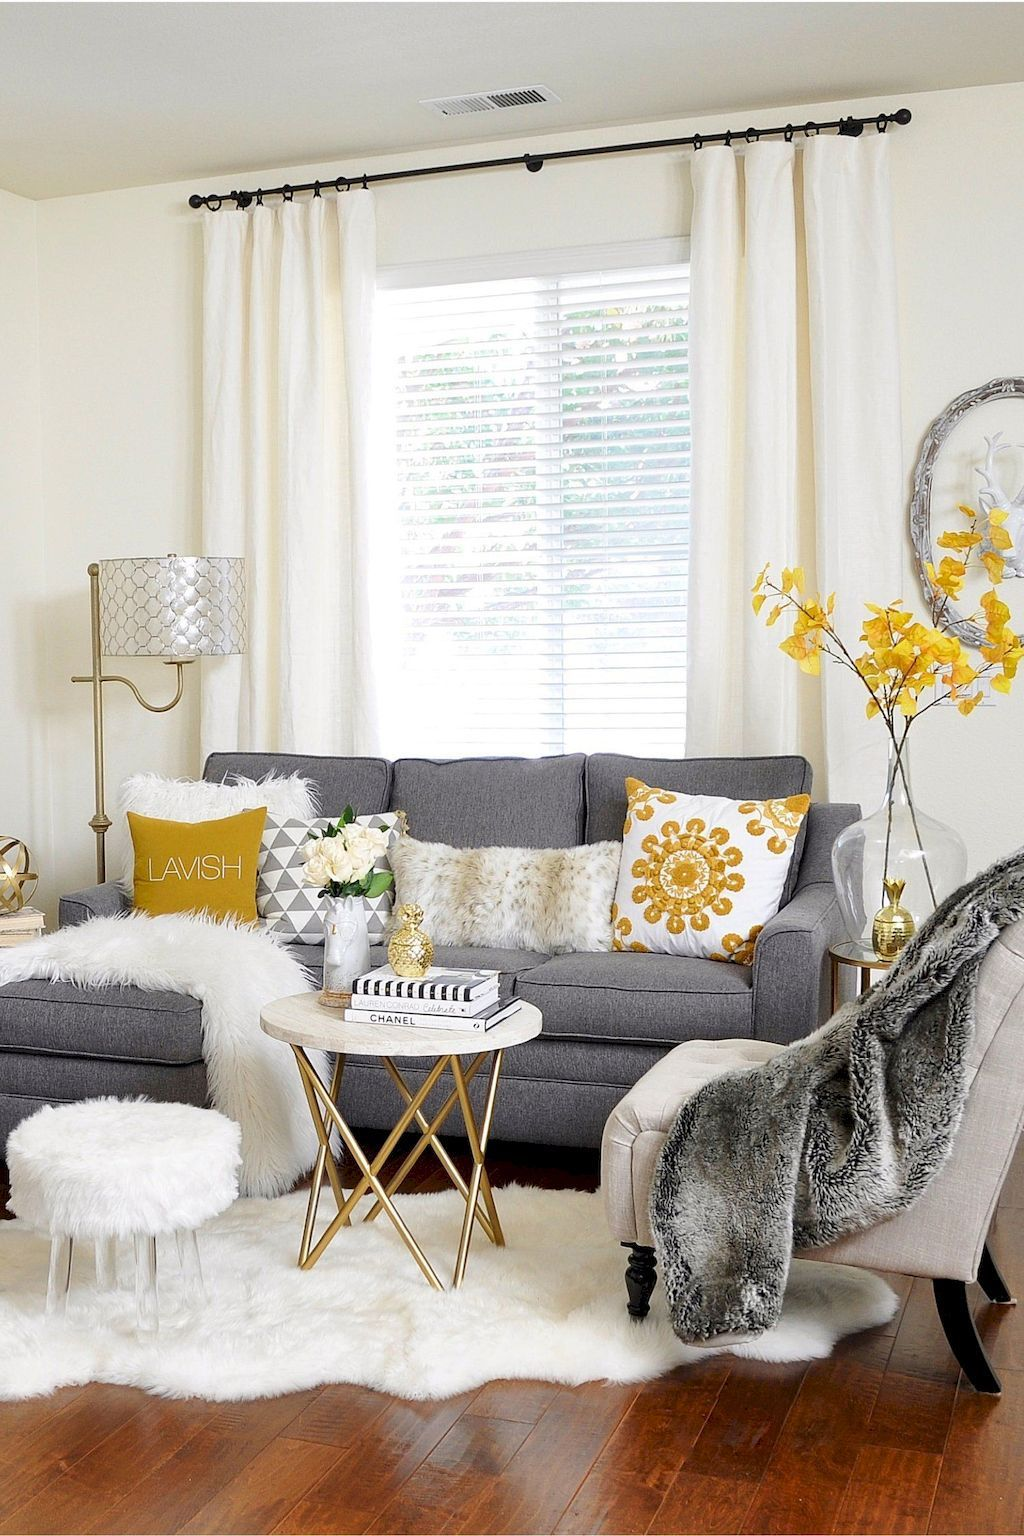 Cozy living room ideas for small apartments (70 | Cozy living rooms ...